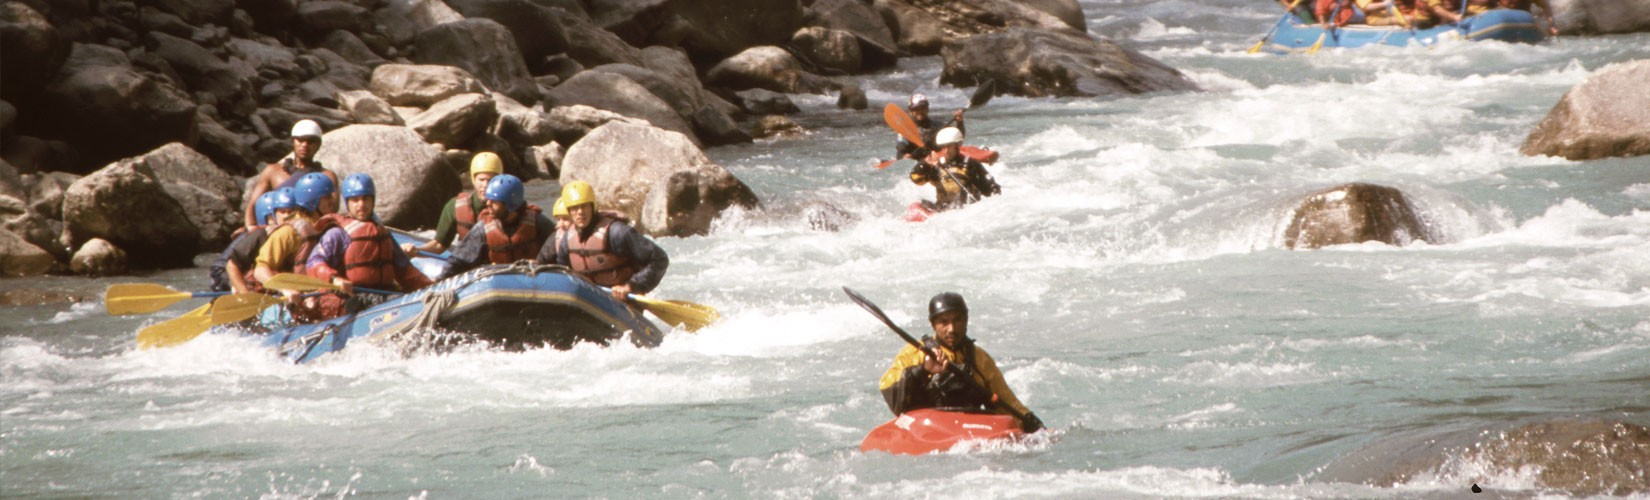 The Bhote Koshi is the upper river course of the Sun Kosi, known as Poiqu in Tibet. Rafting on Bhote Khoshi